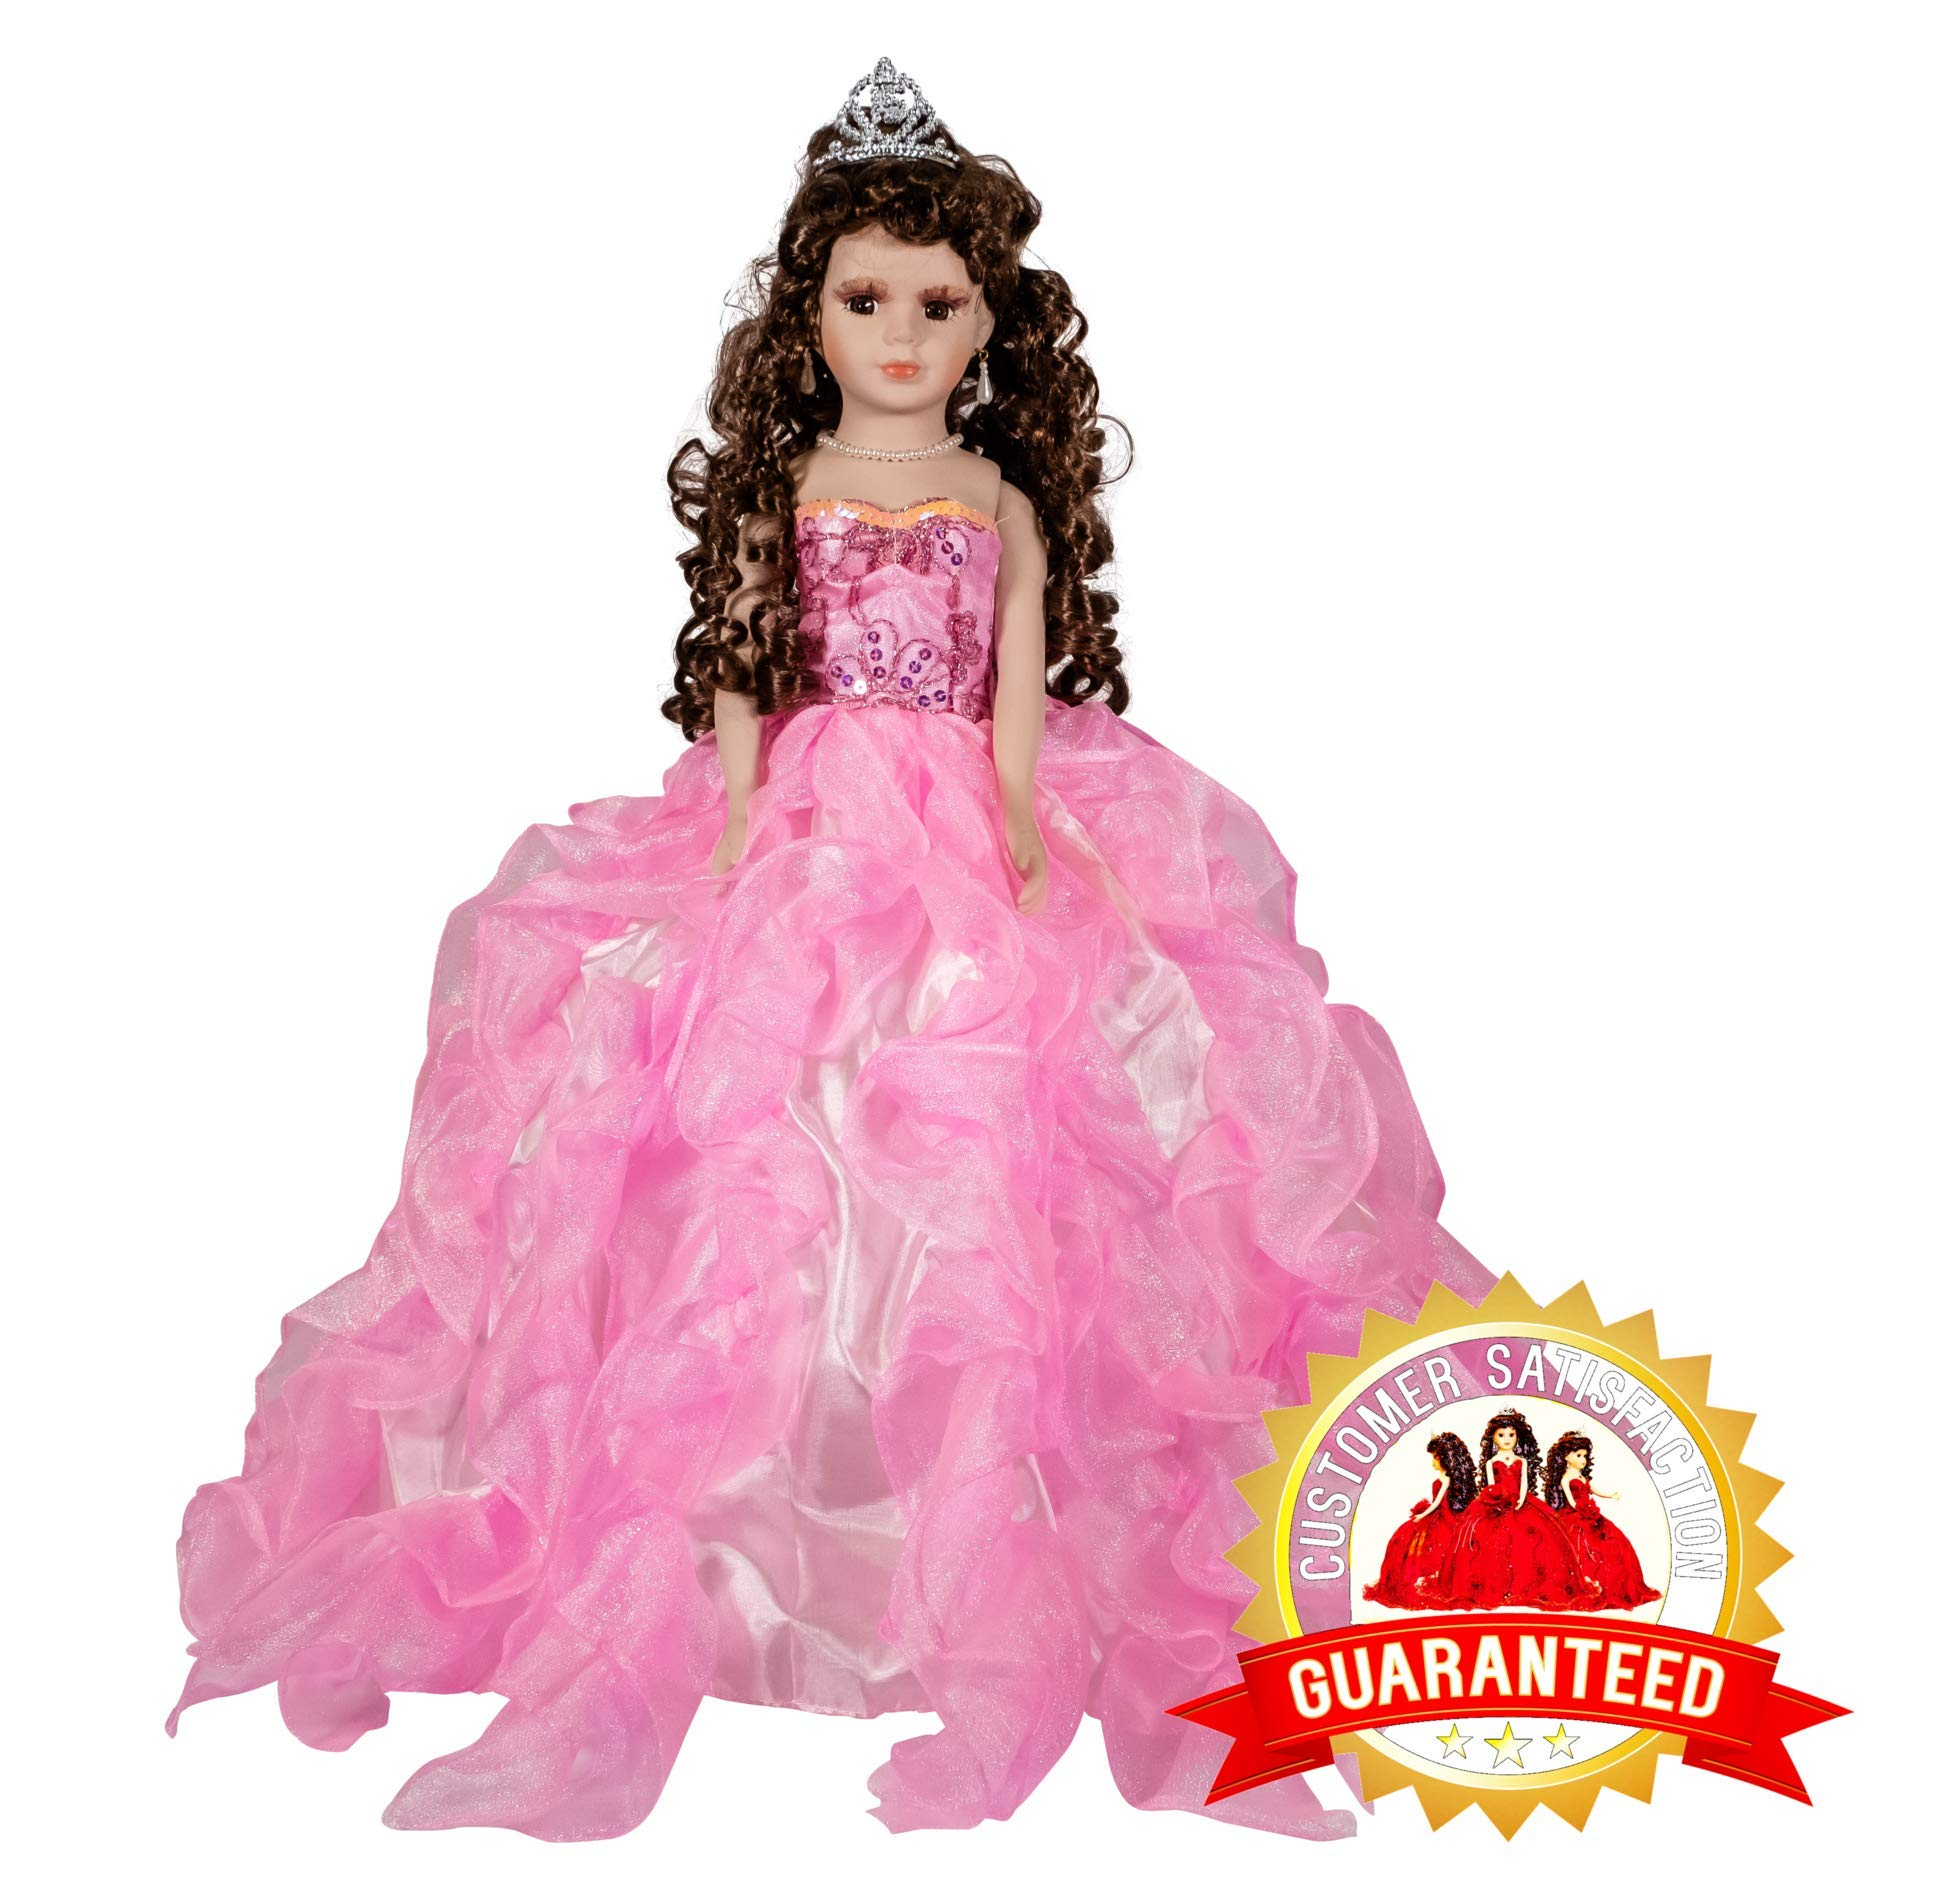 Kinnex Collections by Amanda 20'' Porcelain Quinceanera Umbrella Doll (Table Centerpiece)~ Pink ~ KB20727H-3